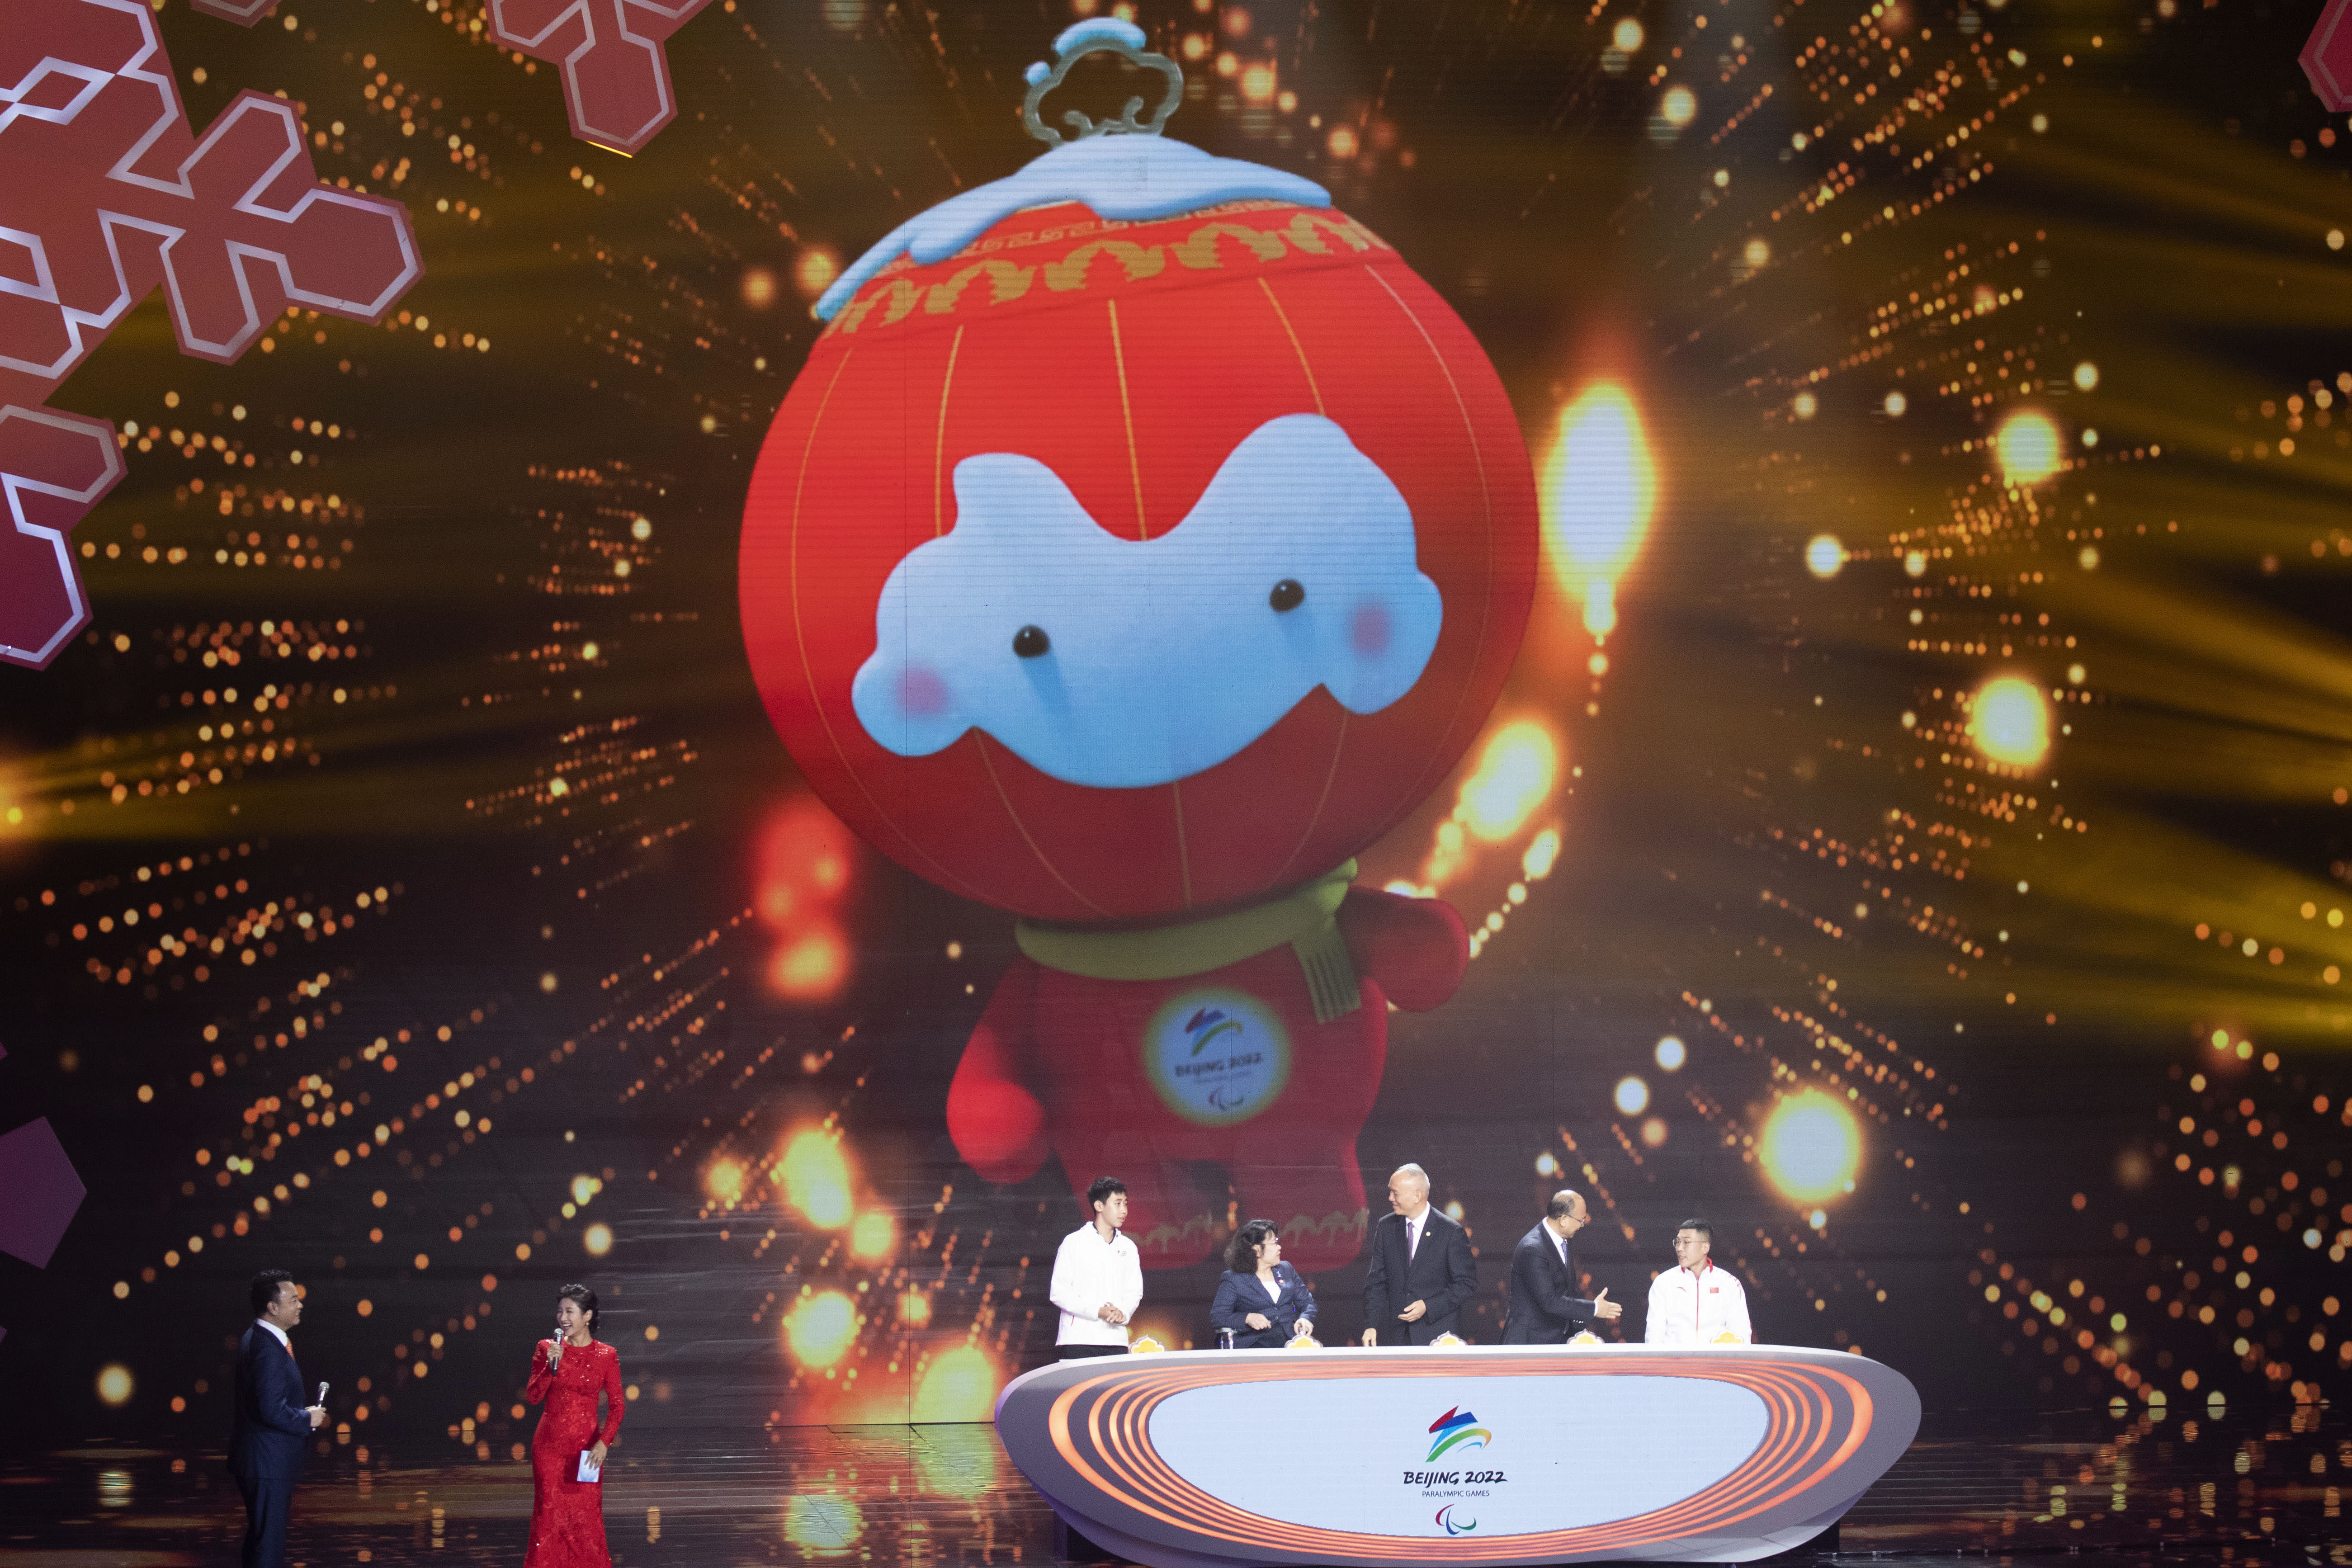 Winter Paralympics 2020 Events.A Panda Is The Mascot For The 2022 Beijing Winter Olympics